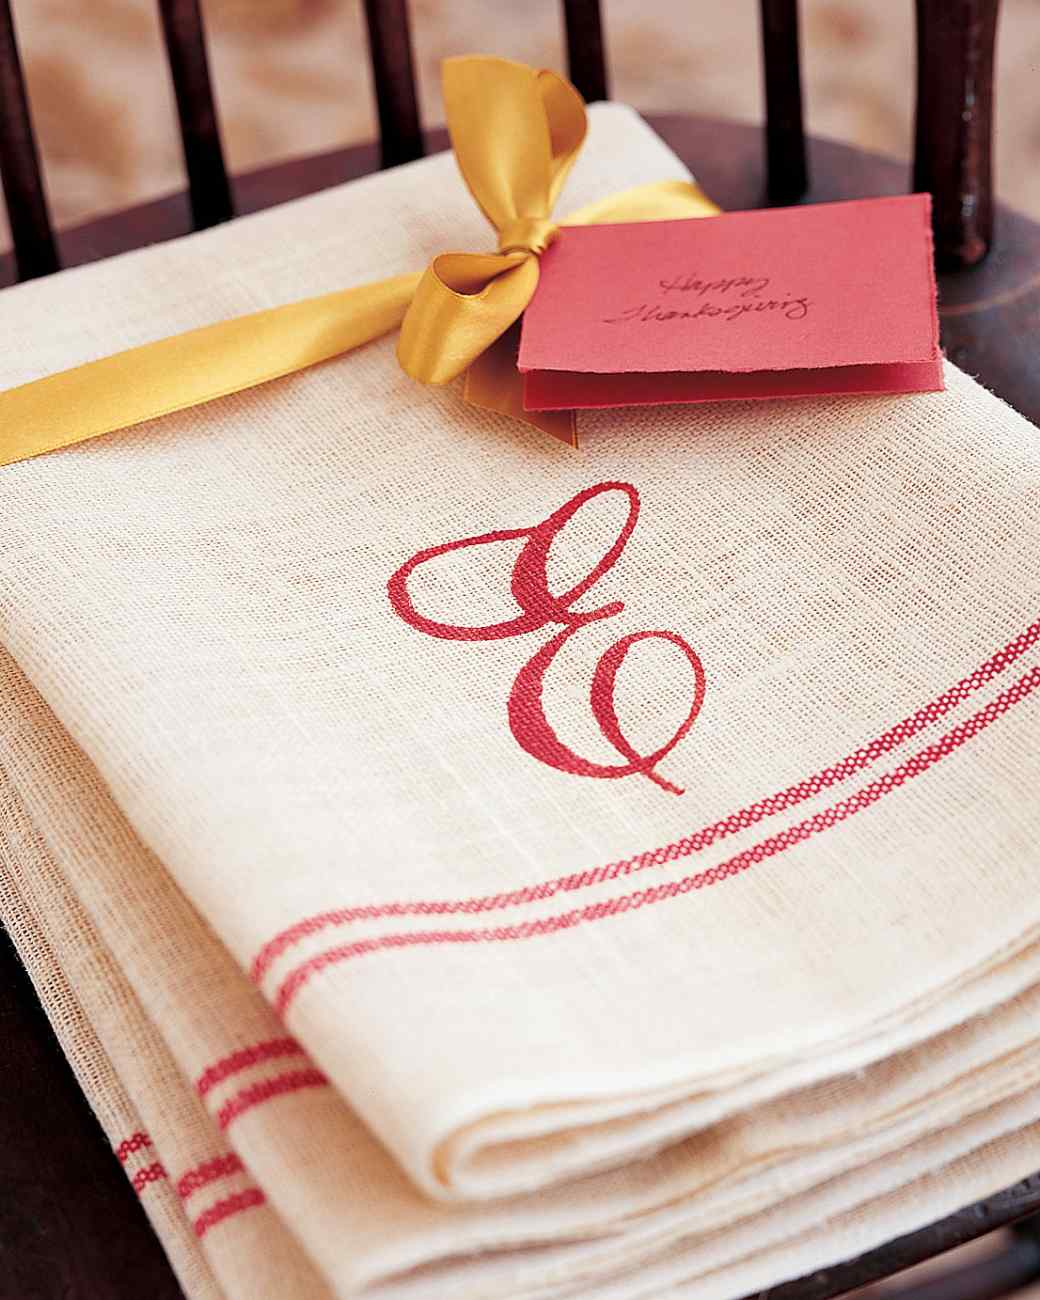 Charming Monogrammed Hand Towels With Decorative Logo Pattern Towel For Bathing Ideas